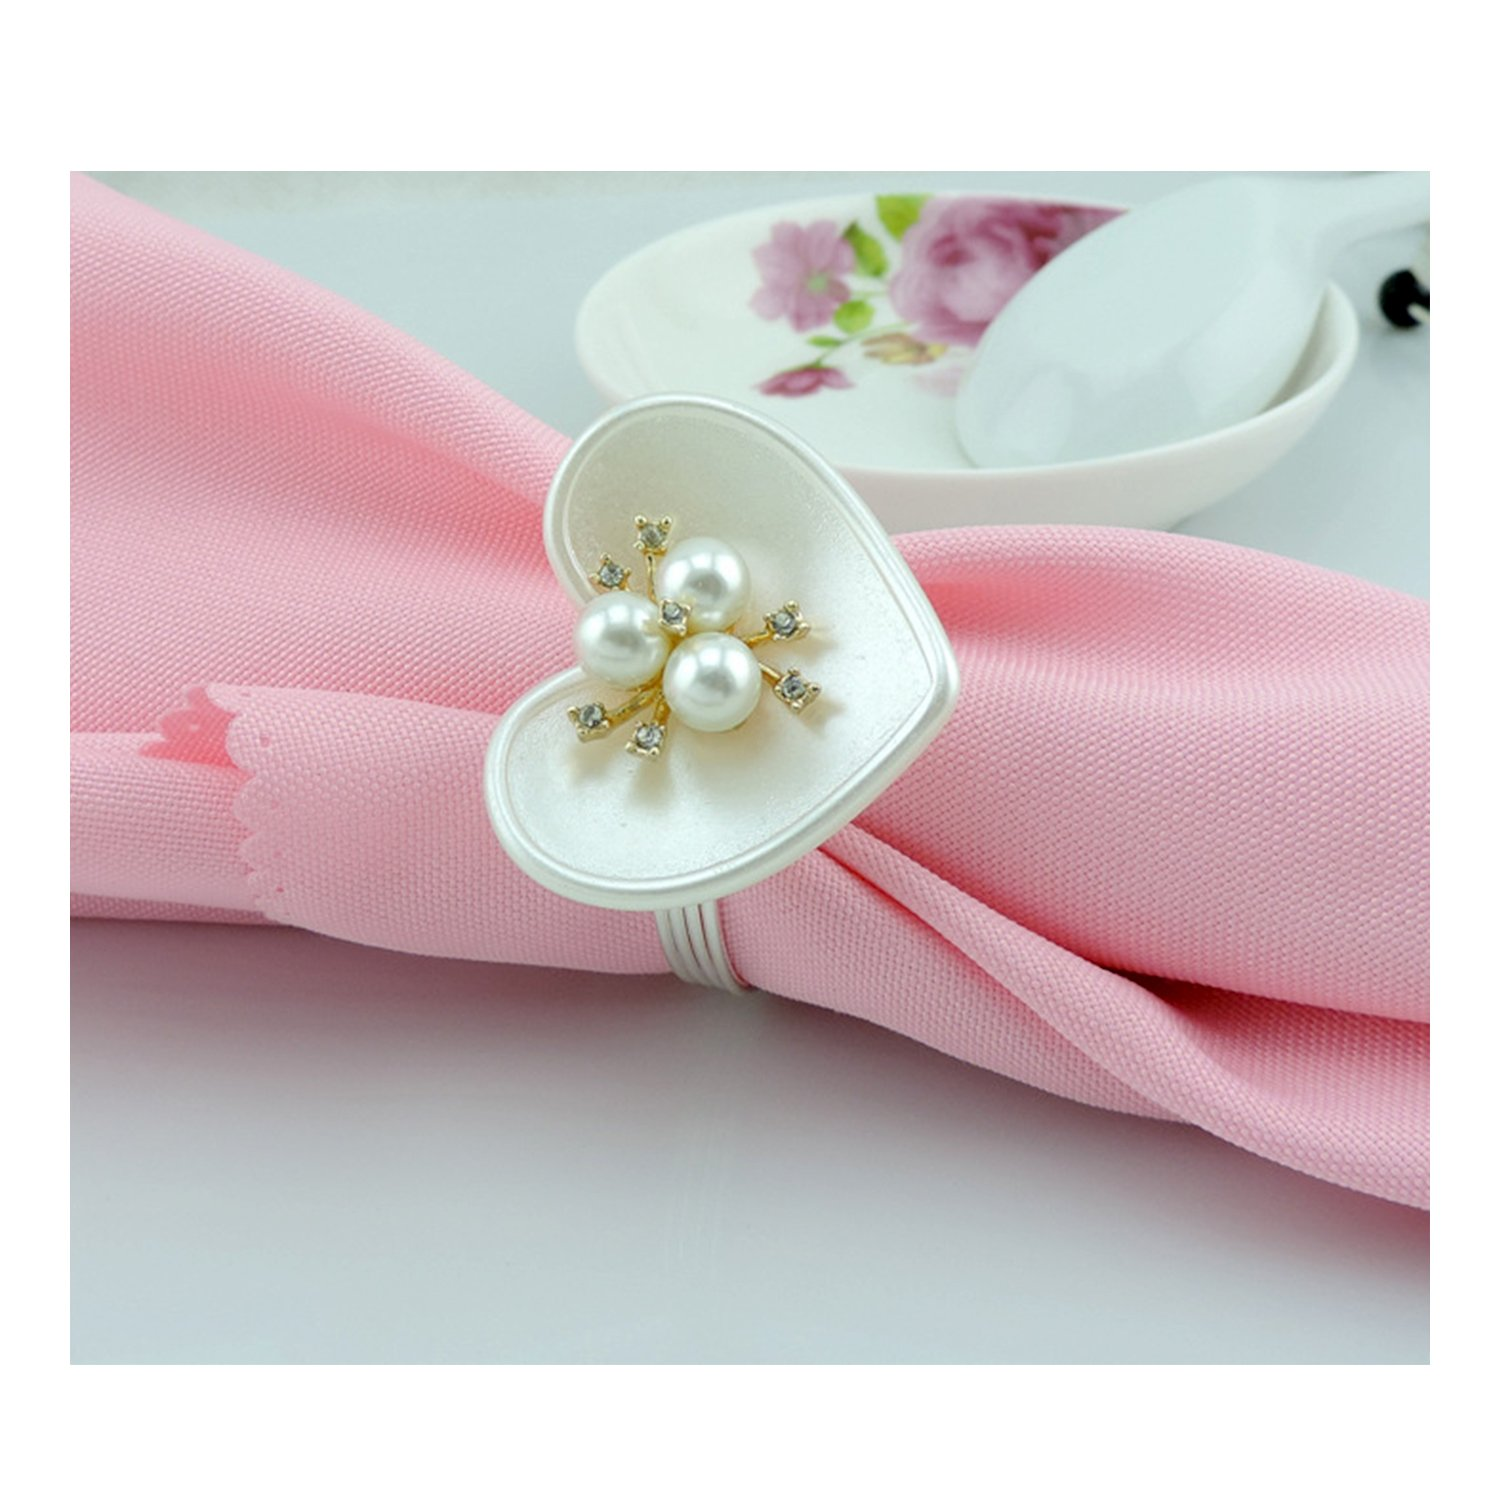 Amazon.com: Napkin Rings Holder for Weddings, Dinners, Parties ...